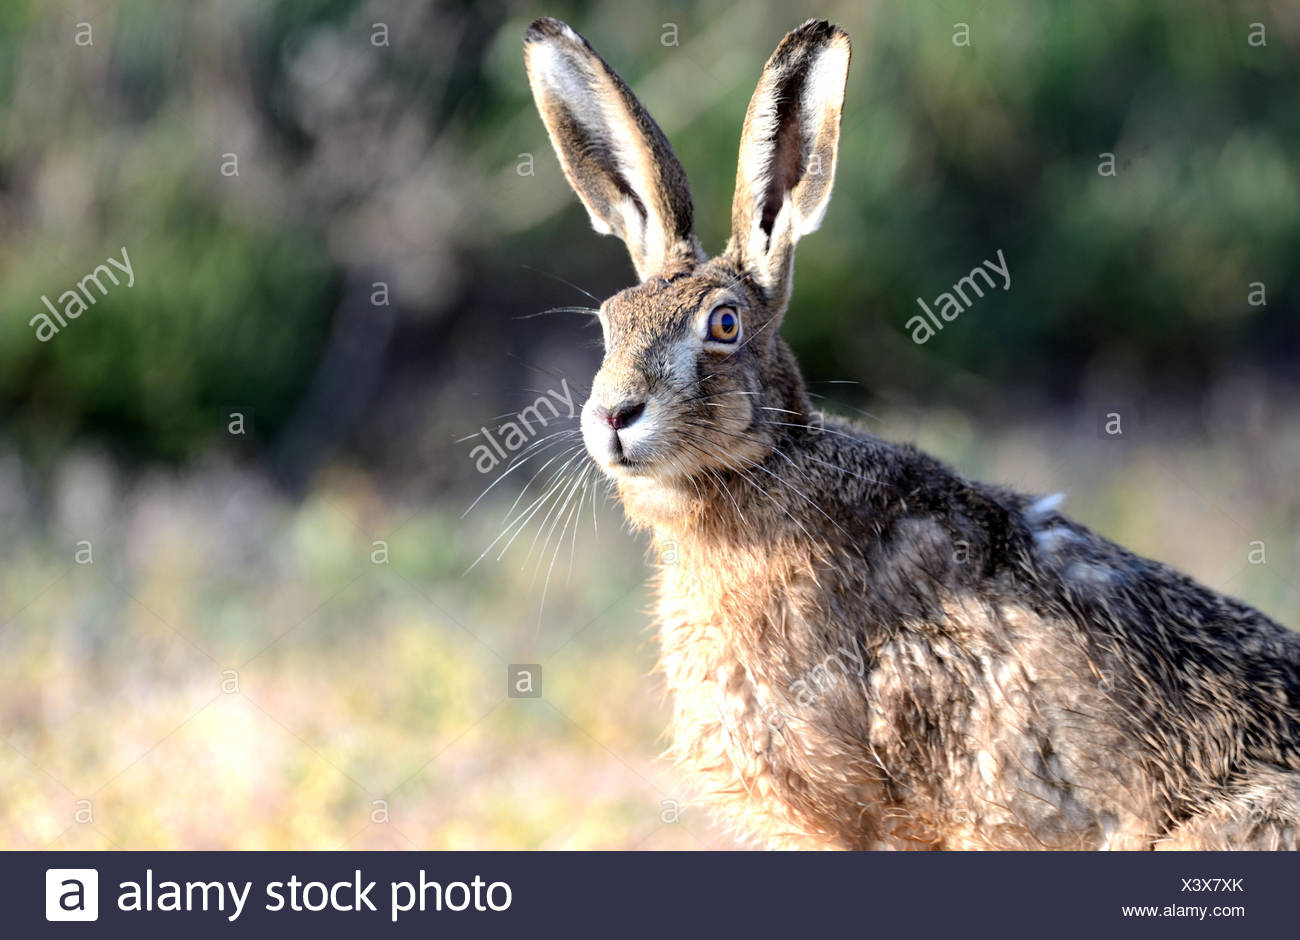 Lièvre, lapin, Lepus europaeus Pallas, lièvre, le champ, rongeur, nature, animal sauvage, jeu, animal, Photo Stock